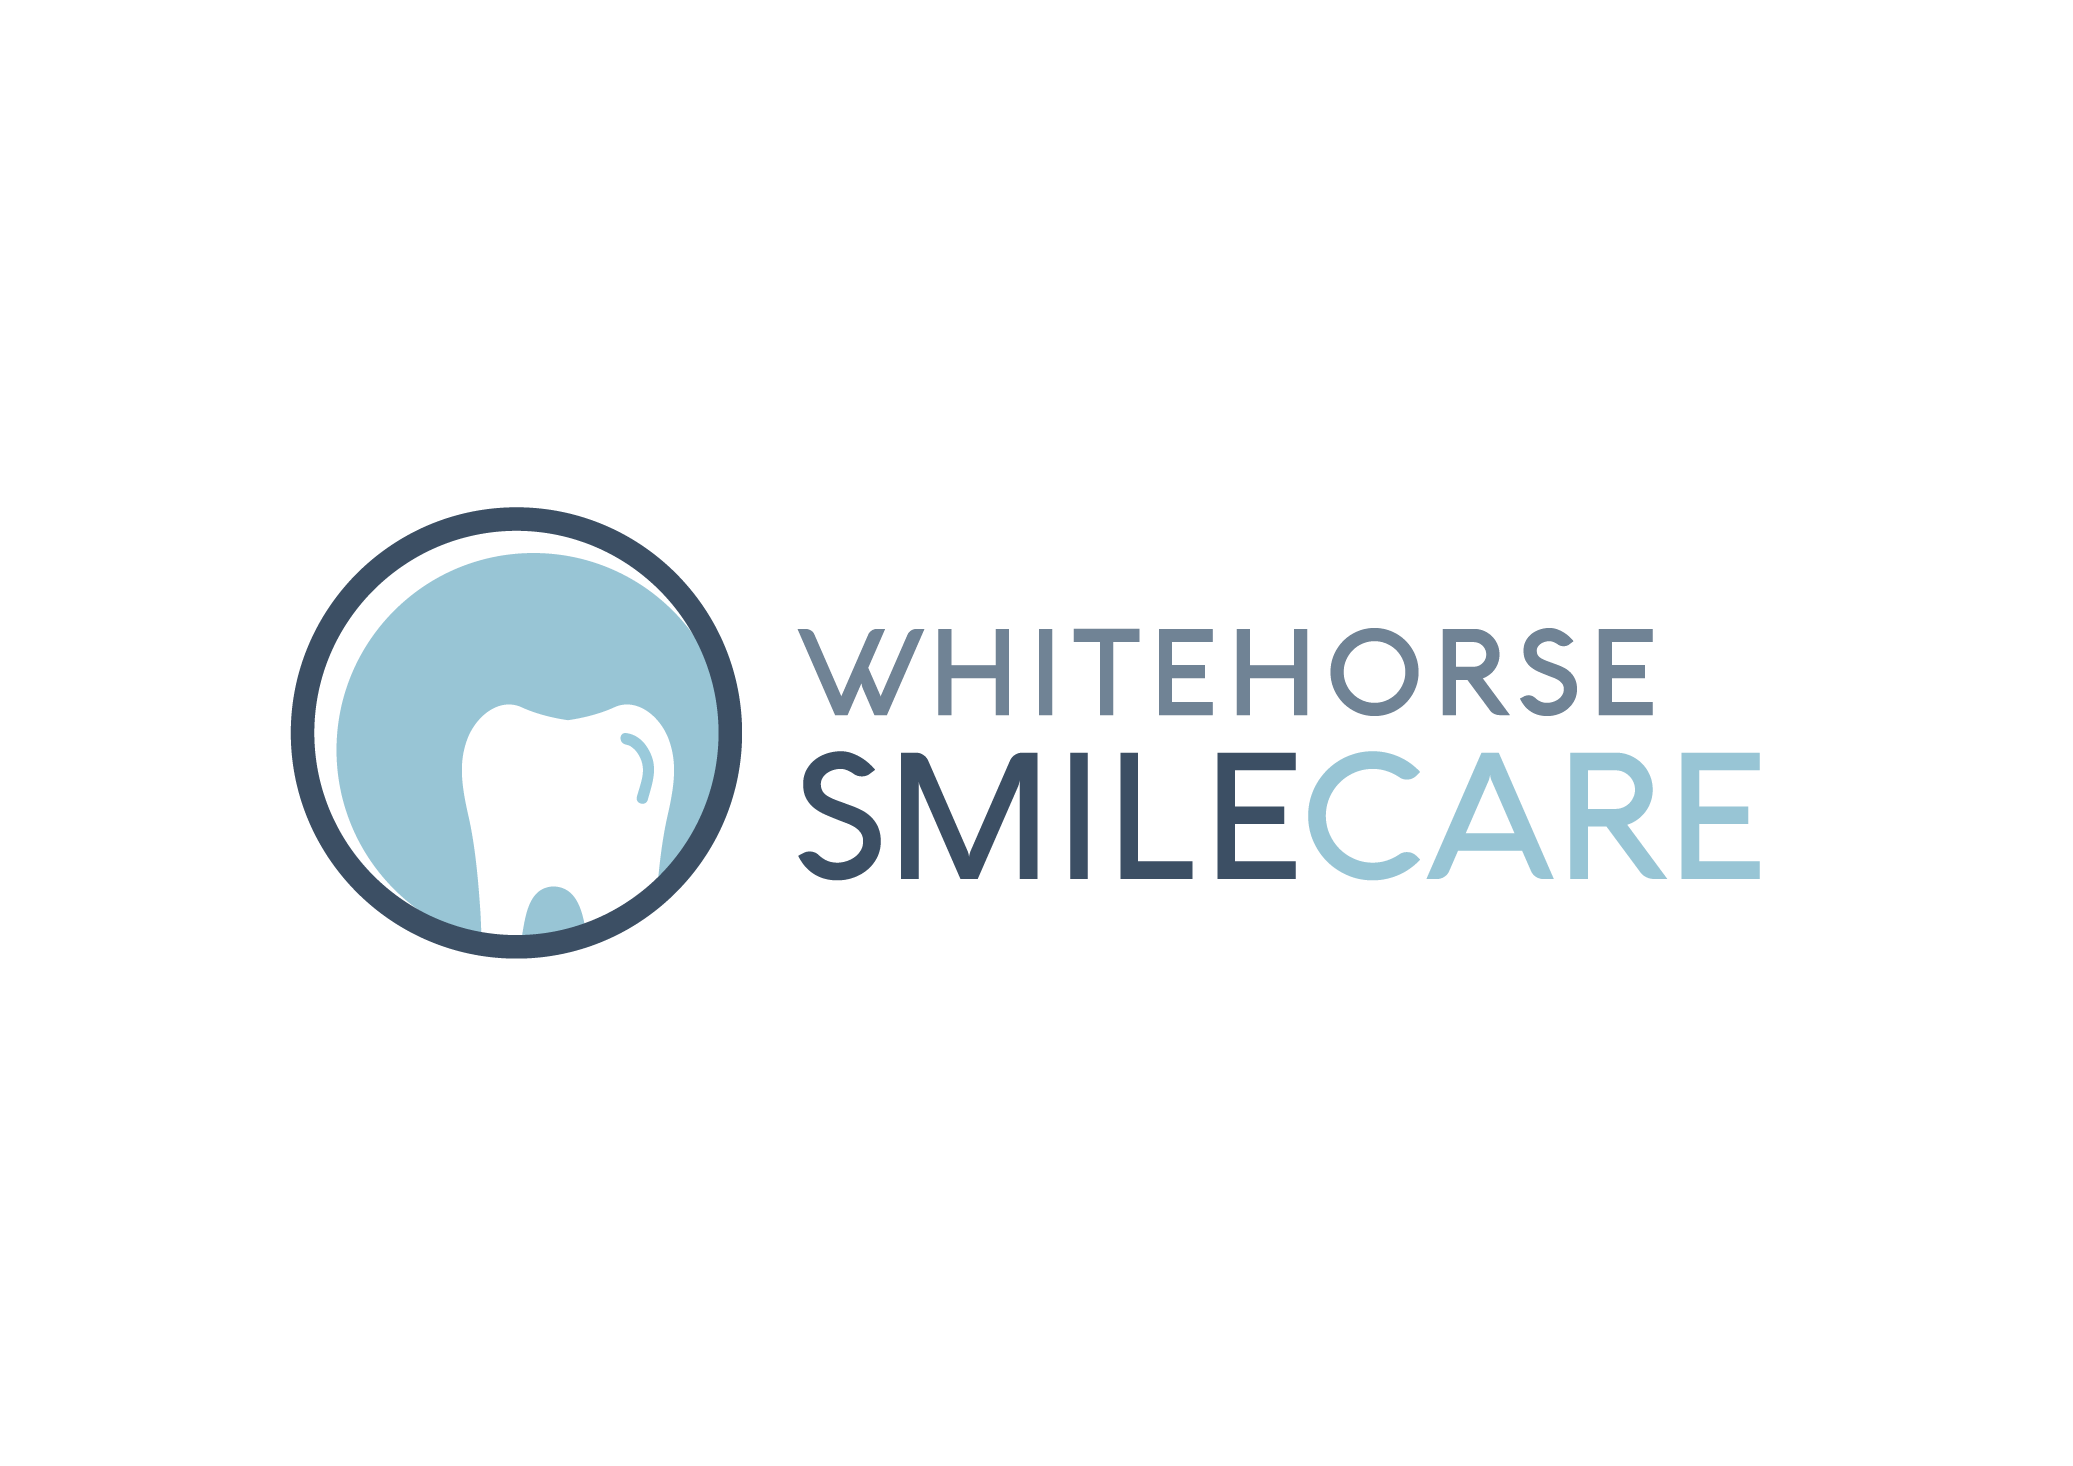 logo for Whitehorse Smile Care Dentists